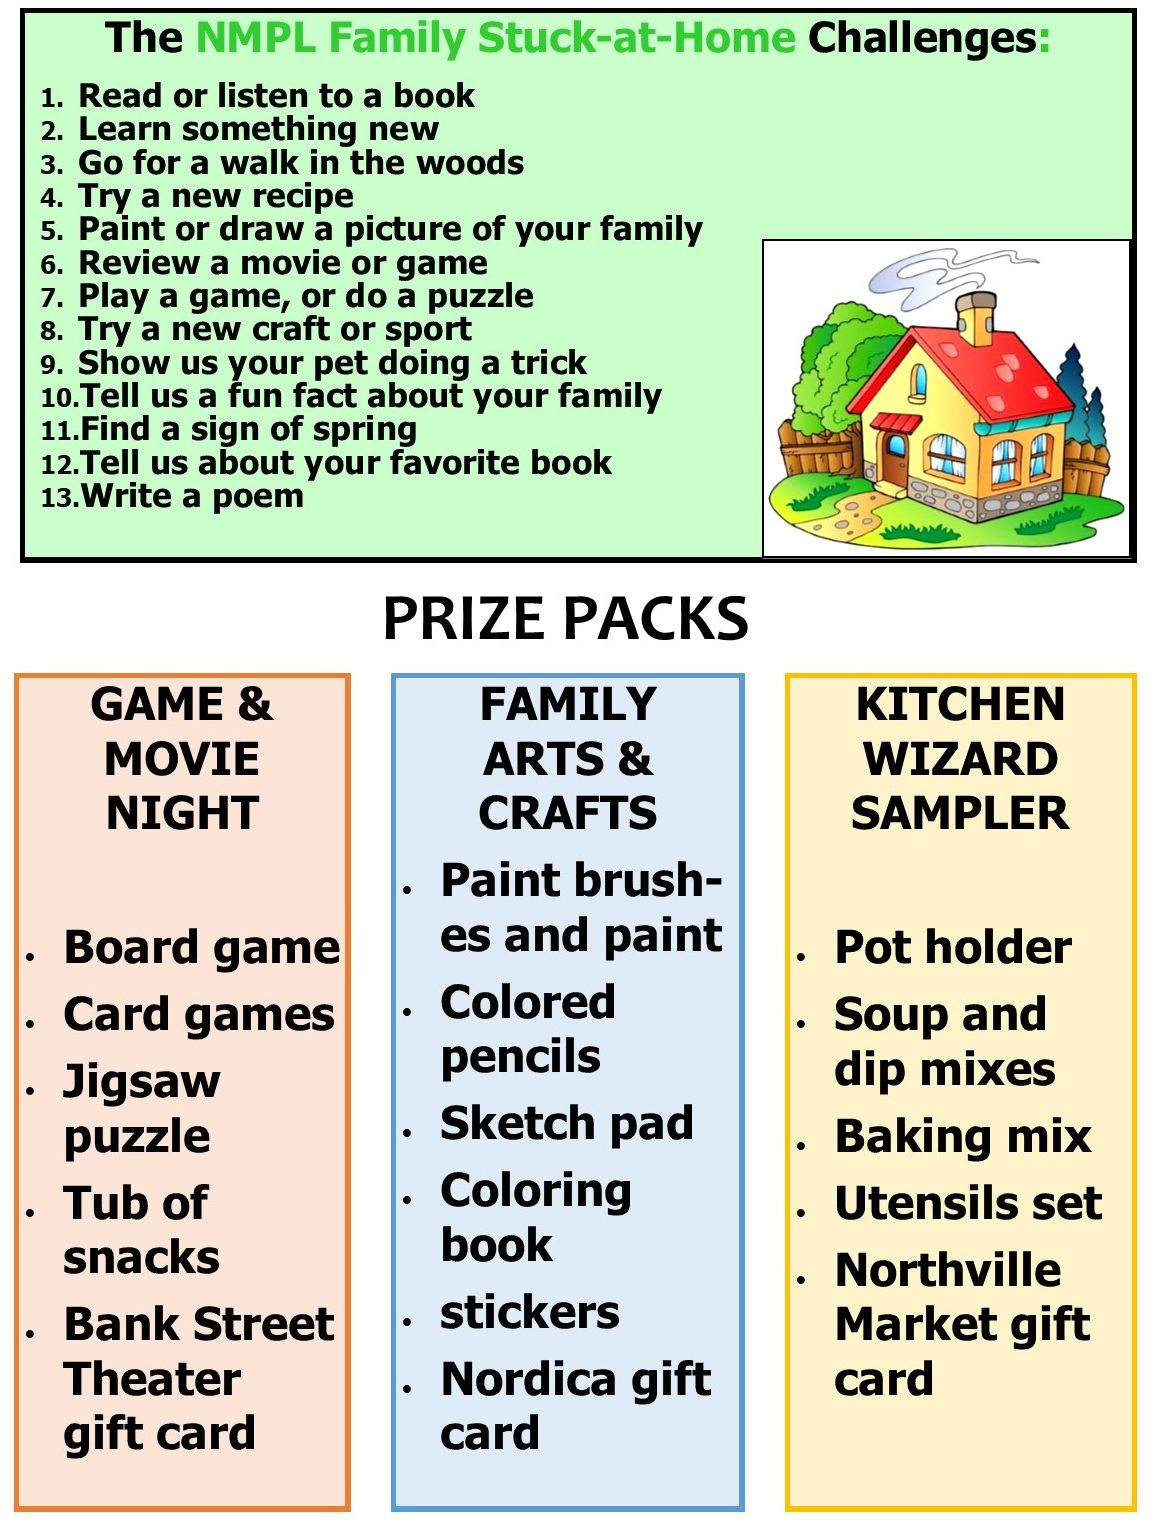 challenges_prize packs